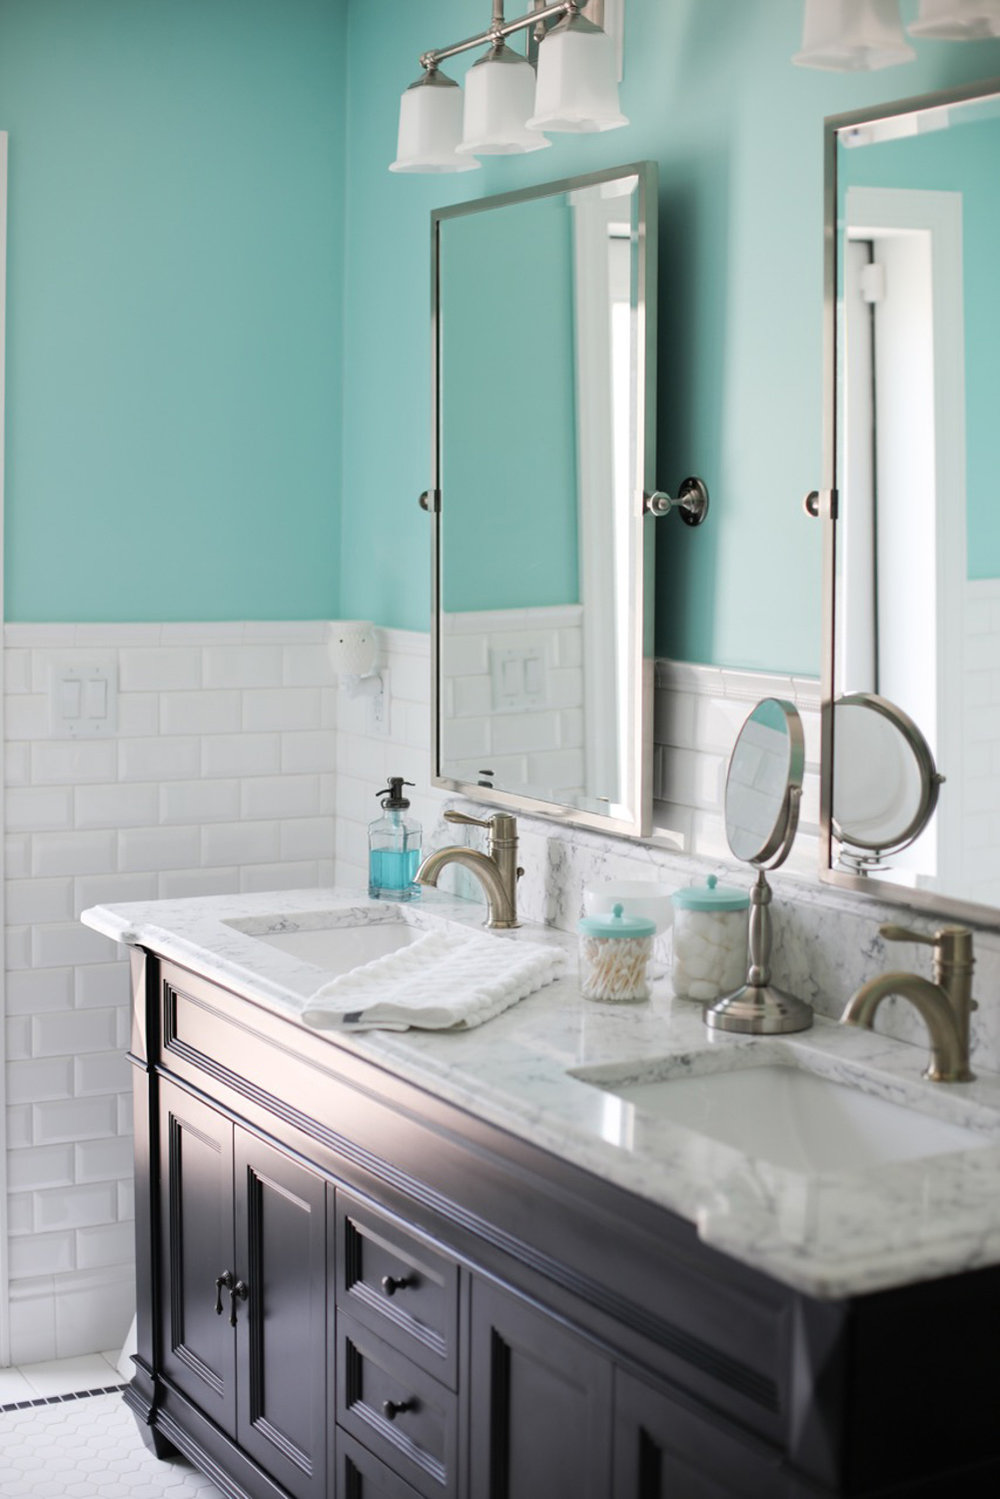 retro-bevel-subway-tile-bathroom-1.jpg